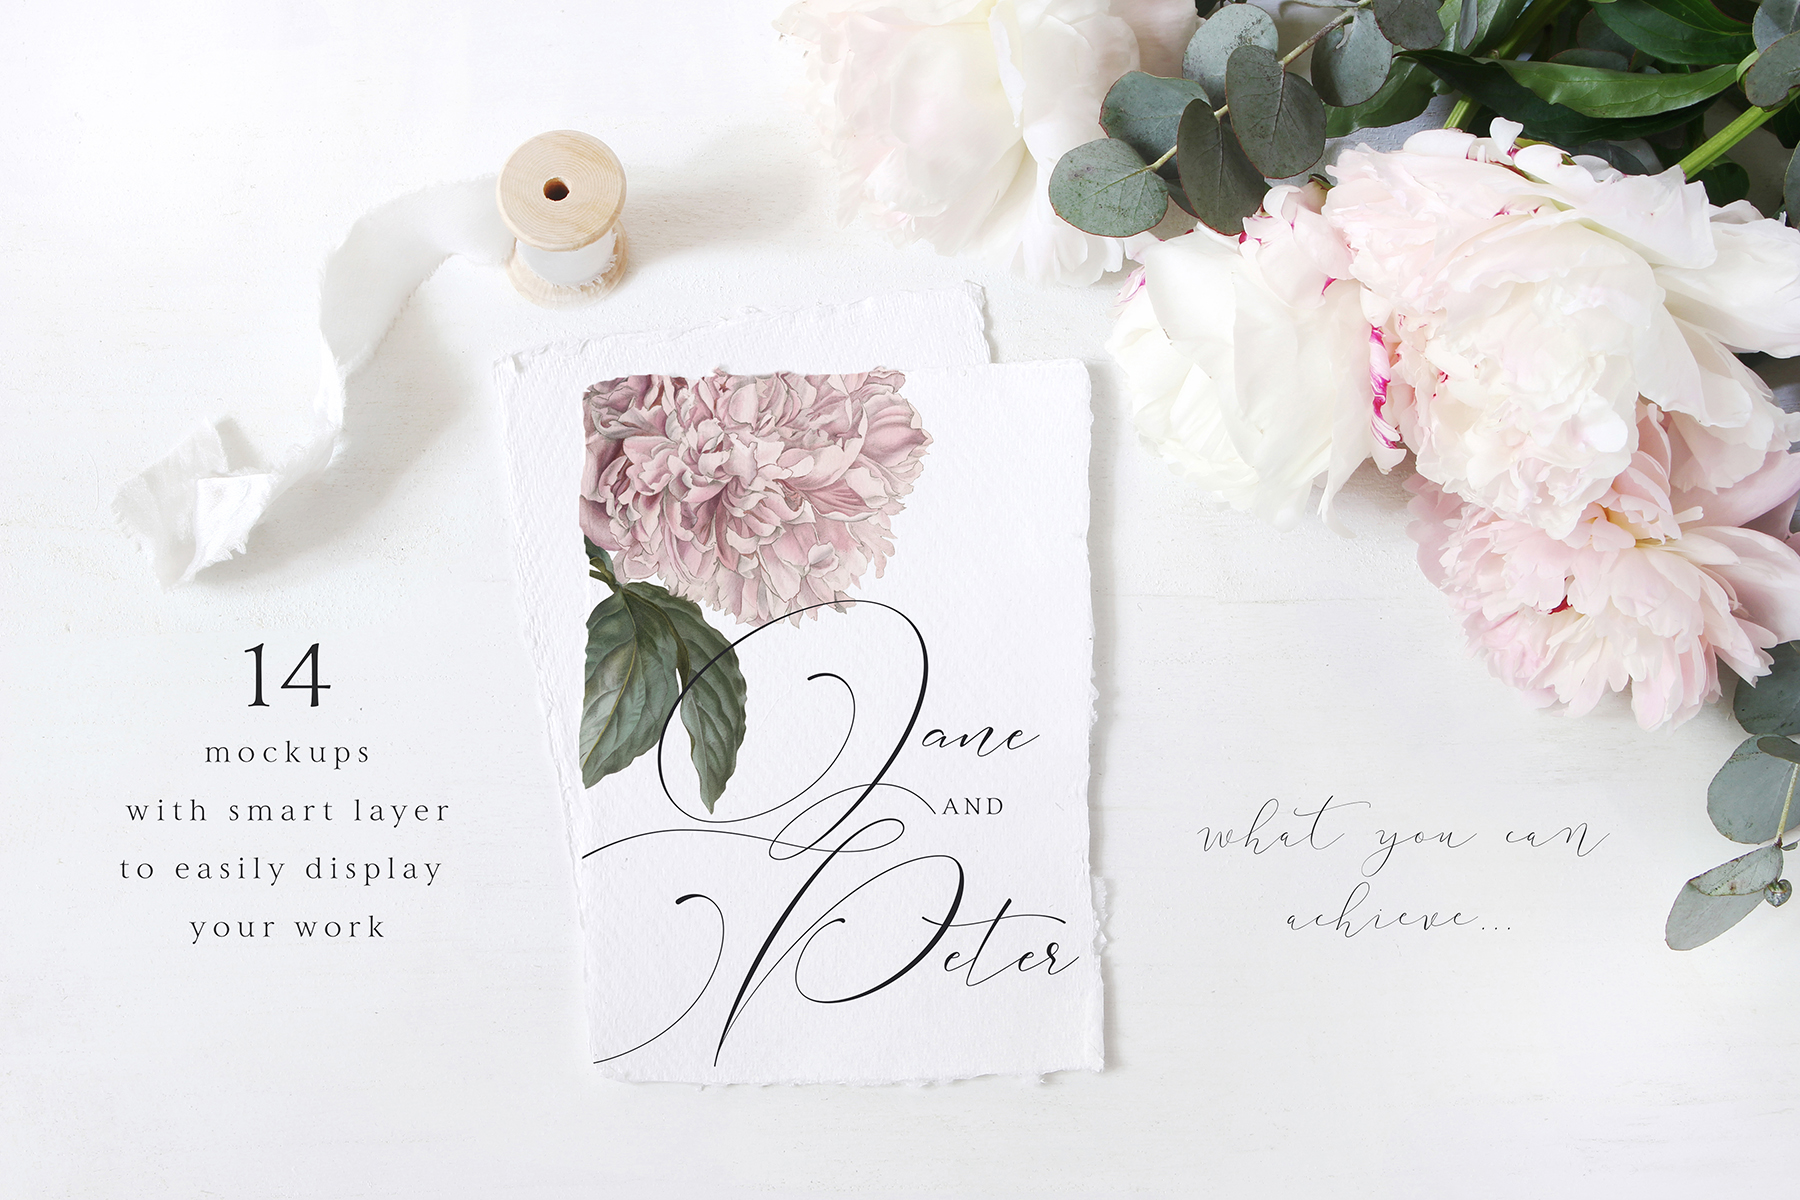 Vintage peony wedding mockups & stock photo bundle example image 2